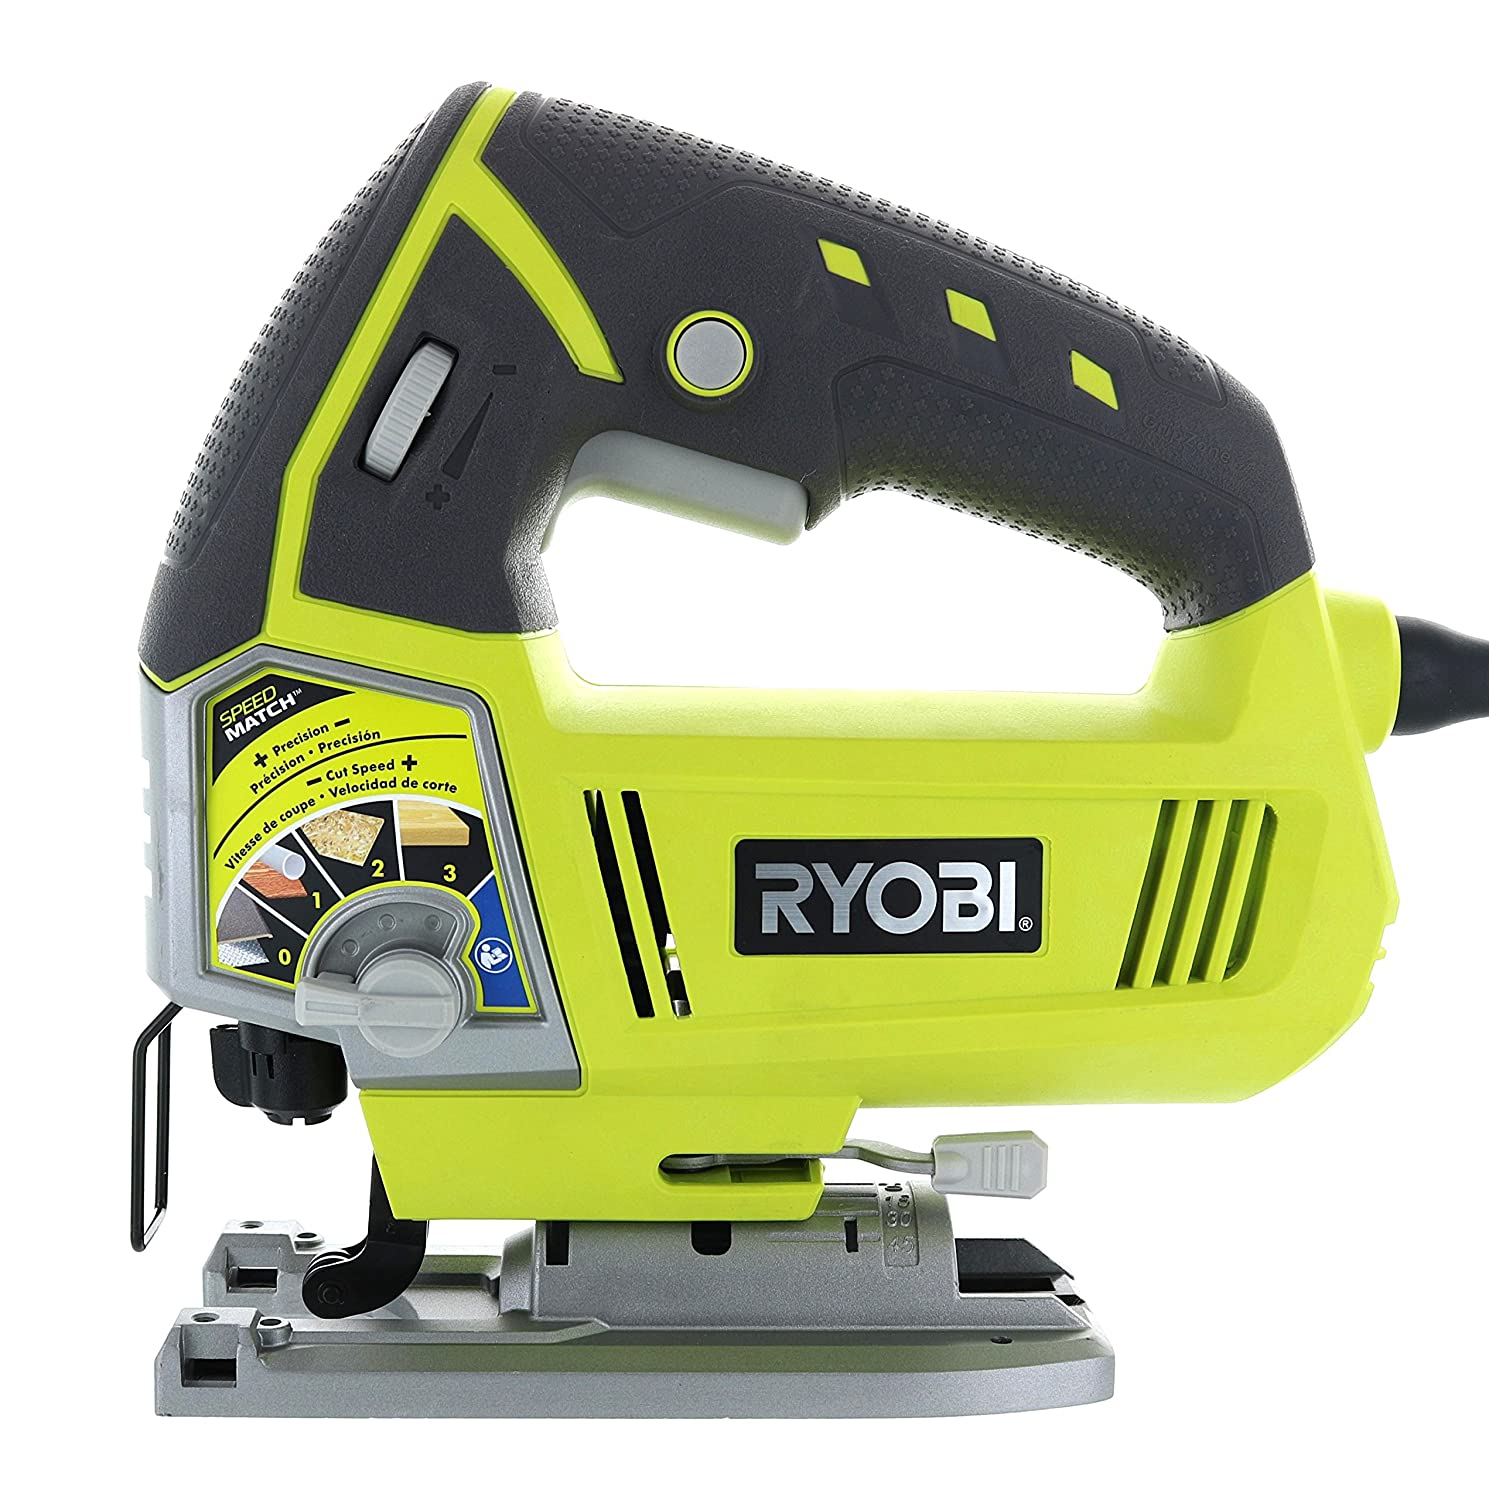 Ryobi js481lg 48 amp corded variable speed t shank orbital jig saw ryobi js481lg 48 amp corded variable speed t shank orbital jig saw w onboard led lighting system amazon keyboard keysfo Choice Image